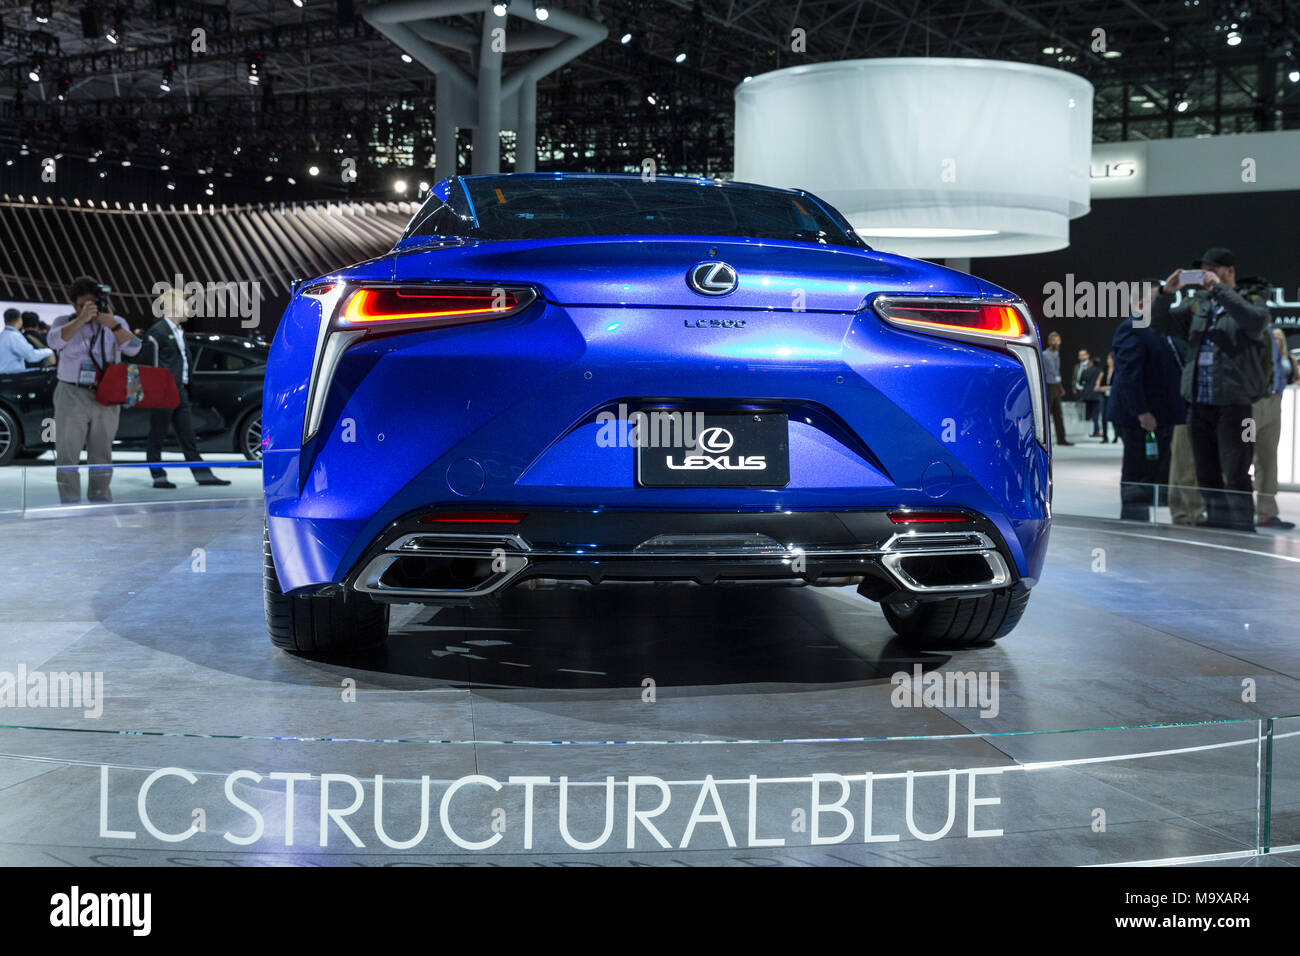 New York Usa 28th Mar 2018 Lexus Lc500 Lc Structural Blue Coupe